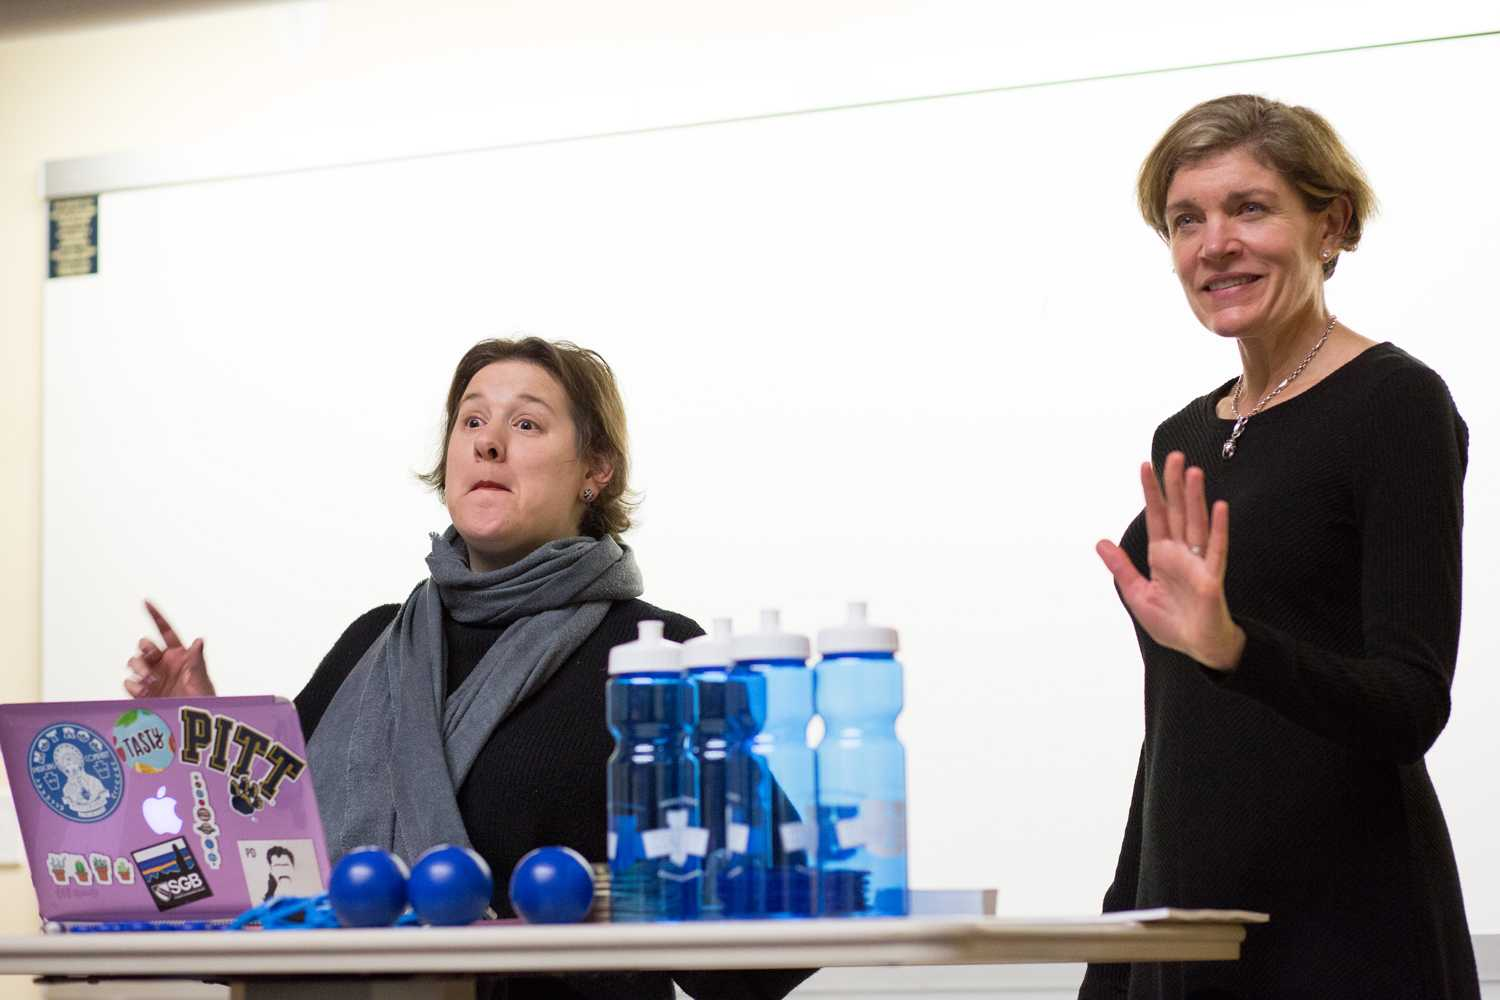 Dr. Marni Greenwald (left) and Dr. Elizabeth Wettick (right) discuss the details of the Mollyschum contagiosum virus at Student Government Board's Sexual Health Q&A event Thursday. (Photo by Thomas Yang | Visual Editor)